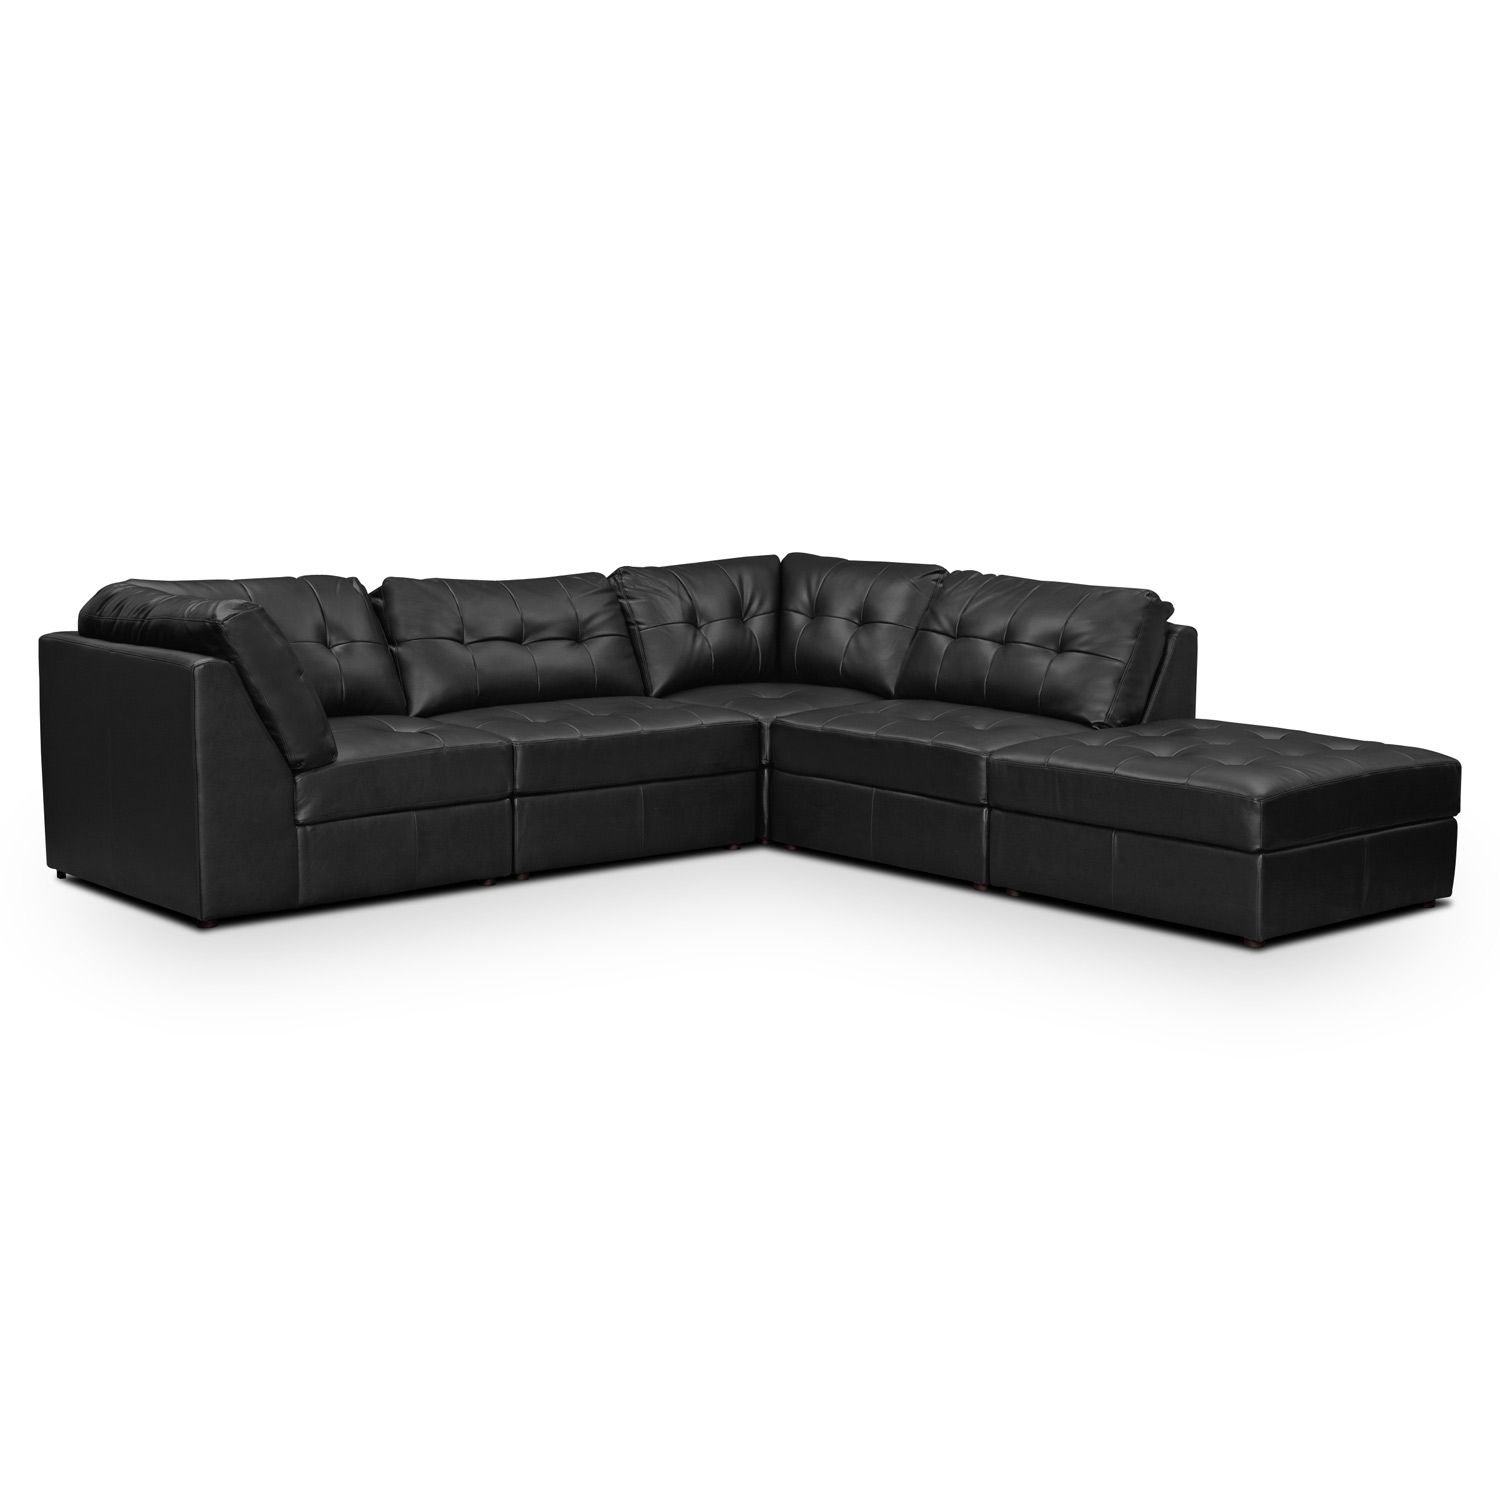 Aventura Leather 5 Pc. Sectional - Value City Furniture with Marcus Chocolate 6 Piece Sectionals With Power Headrest And Usb (Image 3 of 30)